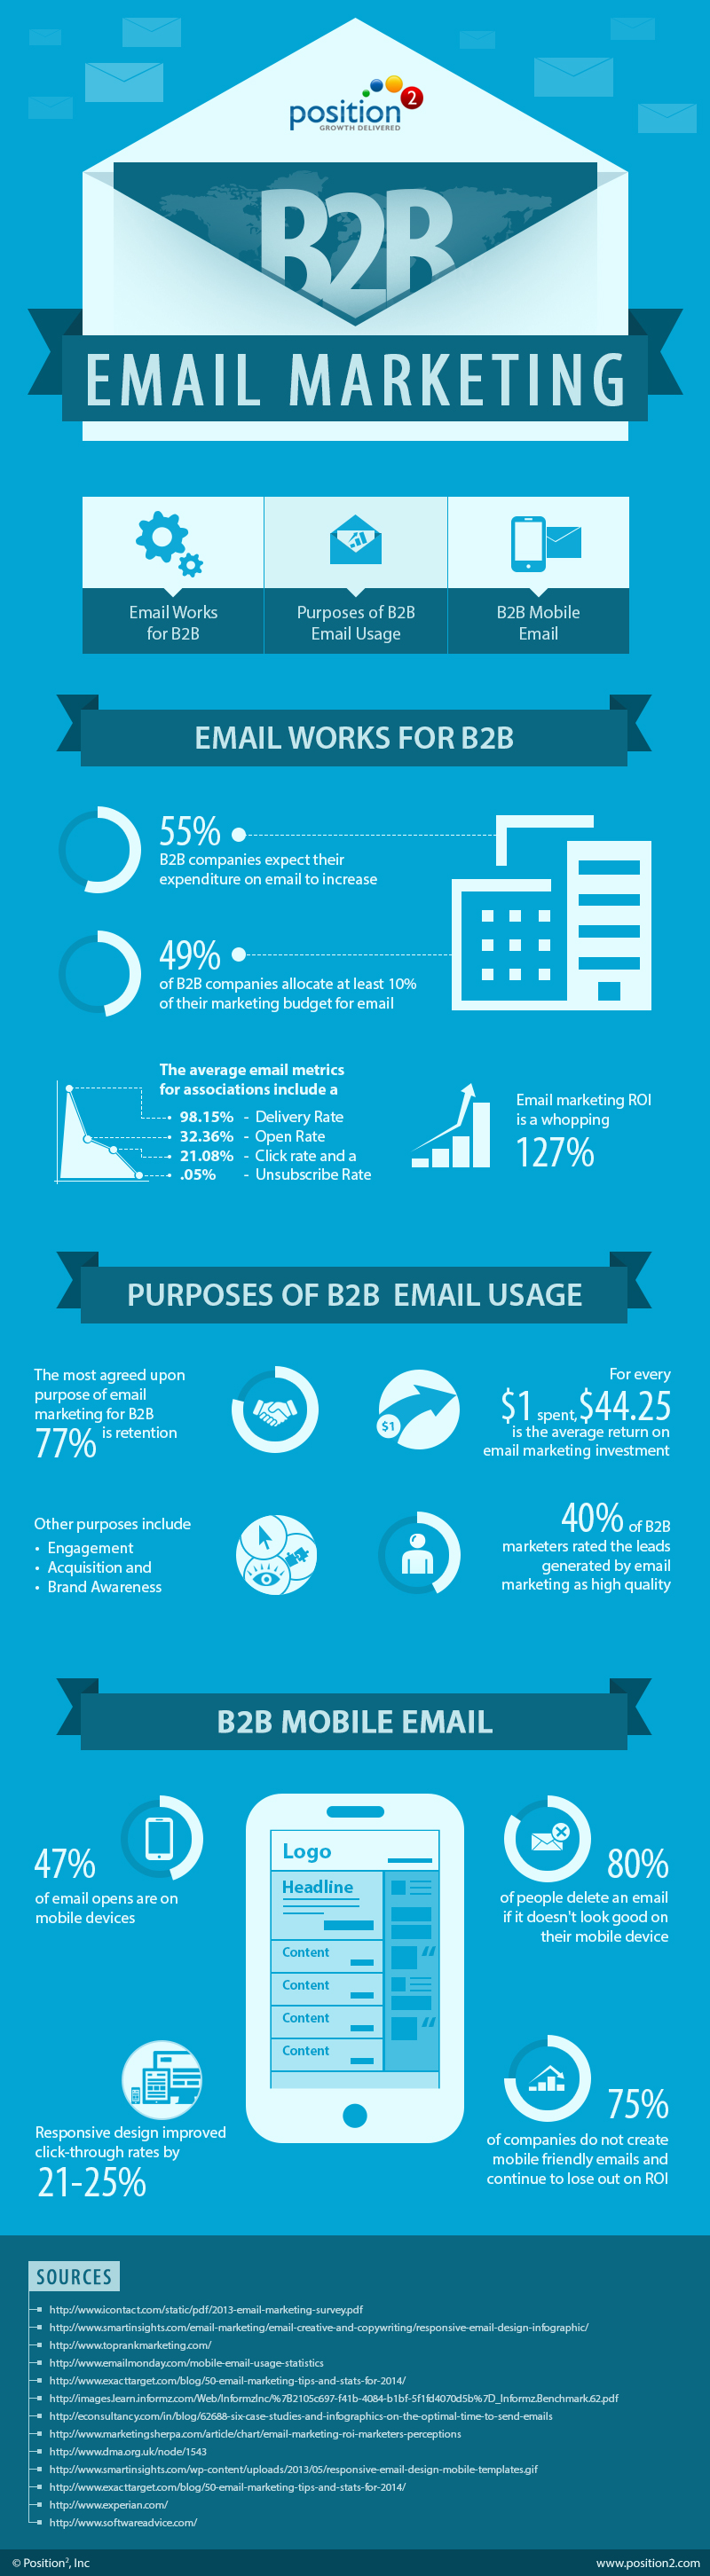 6. Email marketing